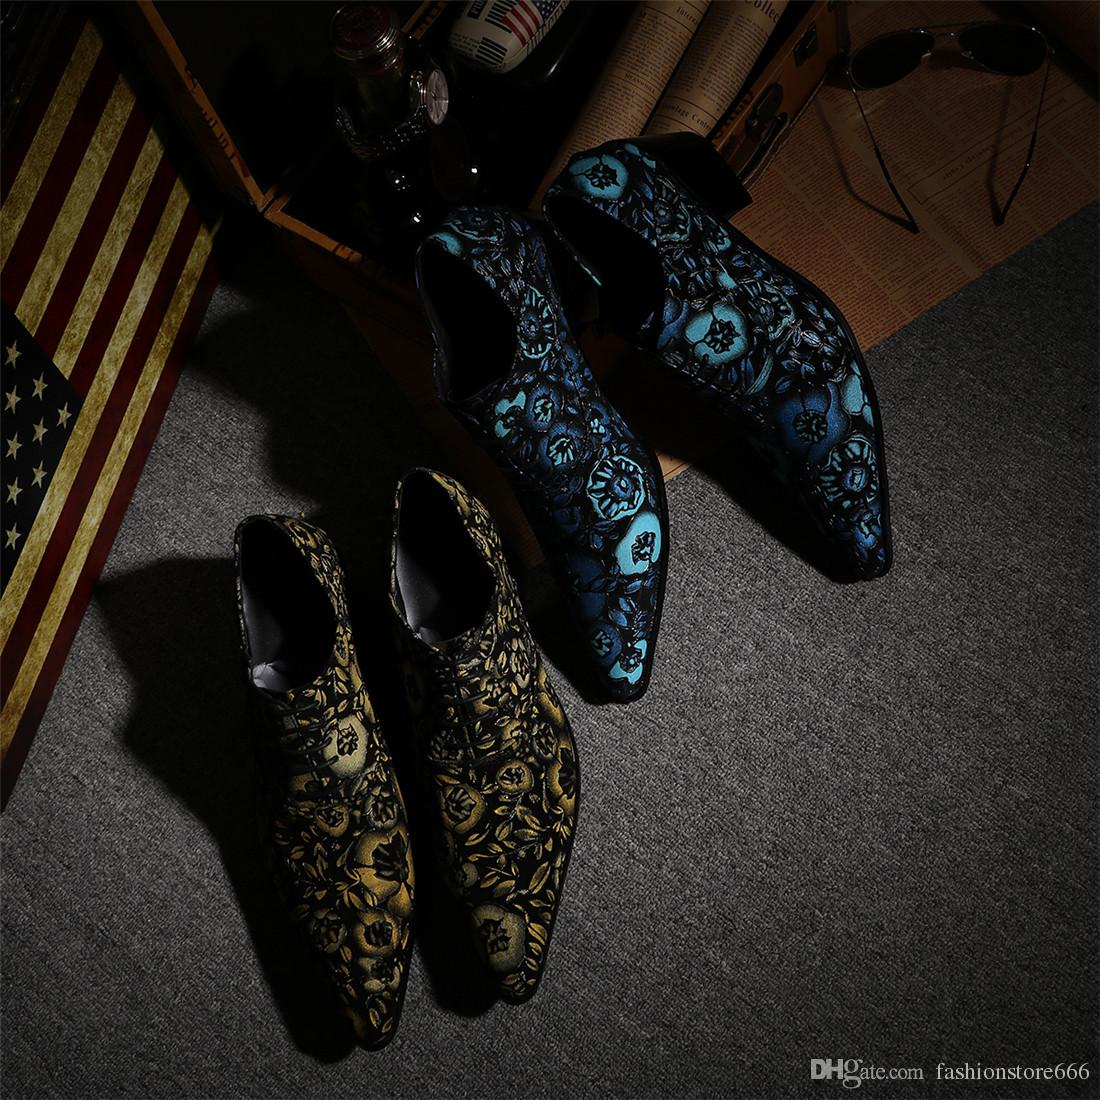 Leather men shoes United Kingdom style exclusive fashion sneakers lace wedding dance shoes men's hiking shoes blue yellow to bright red